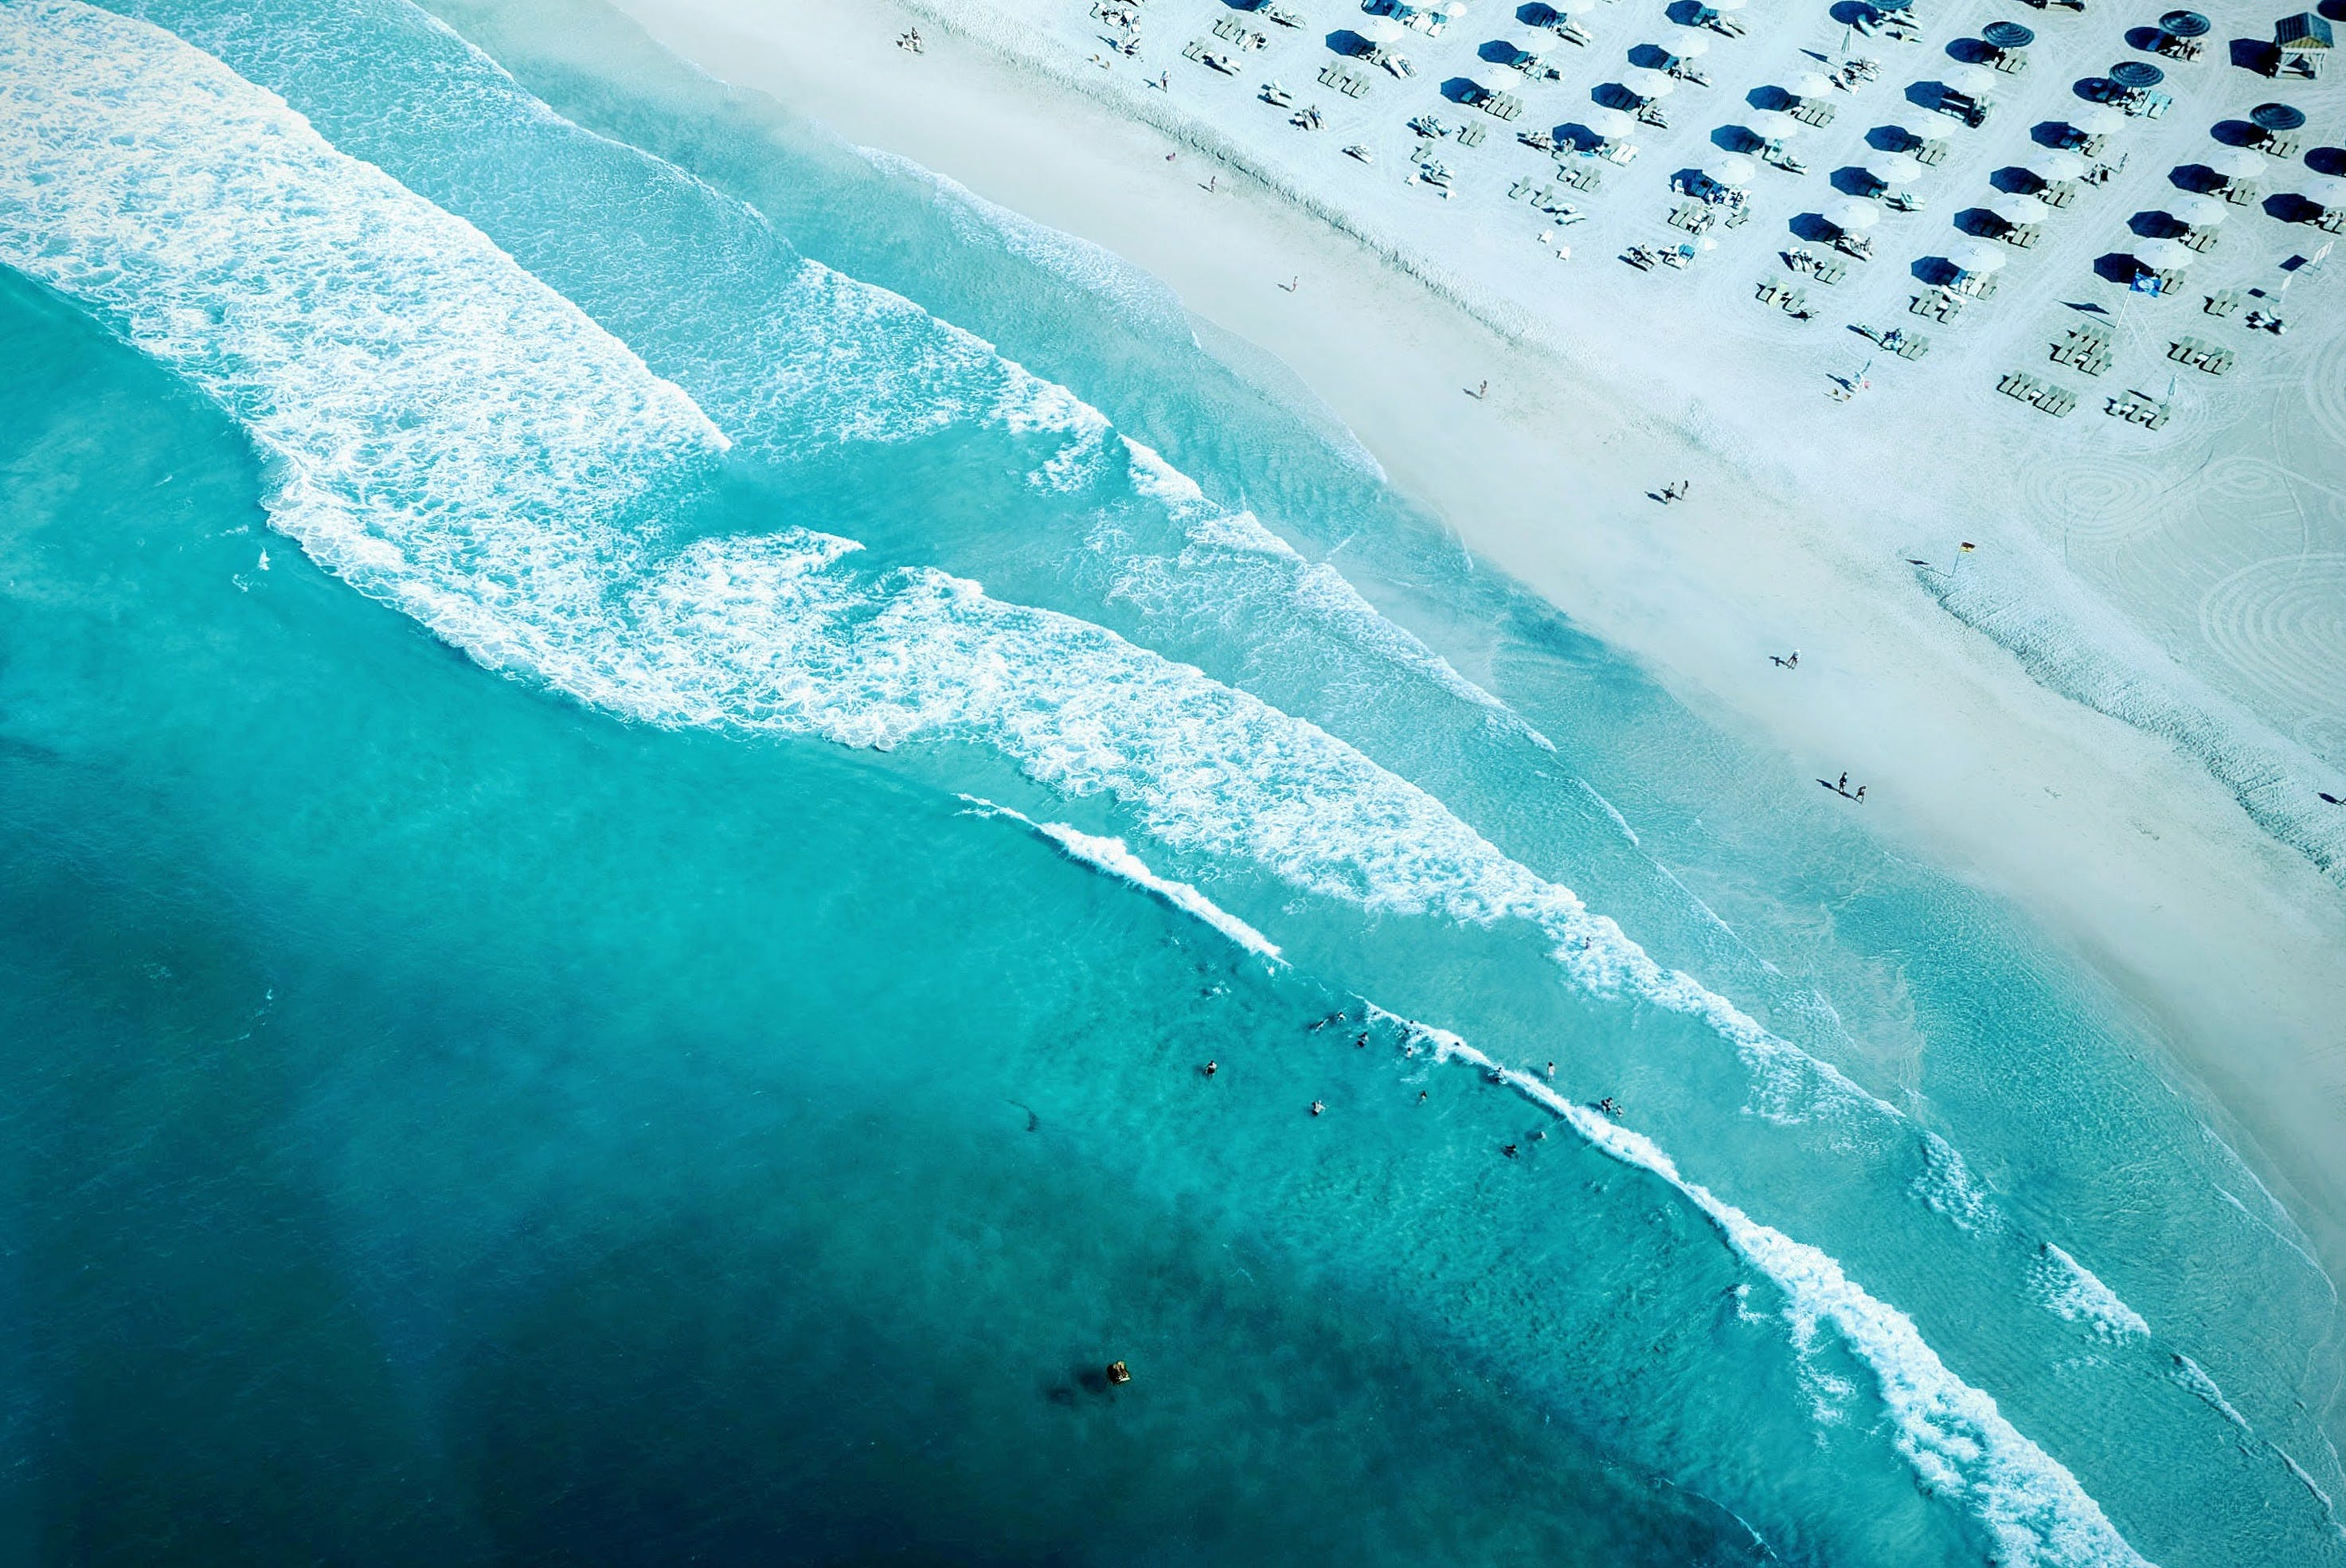 Seashore Aerial Photography during Daytime